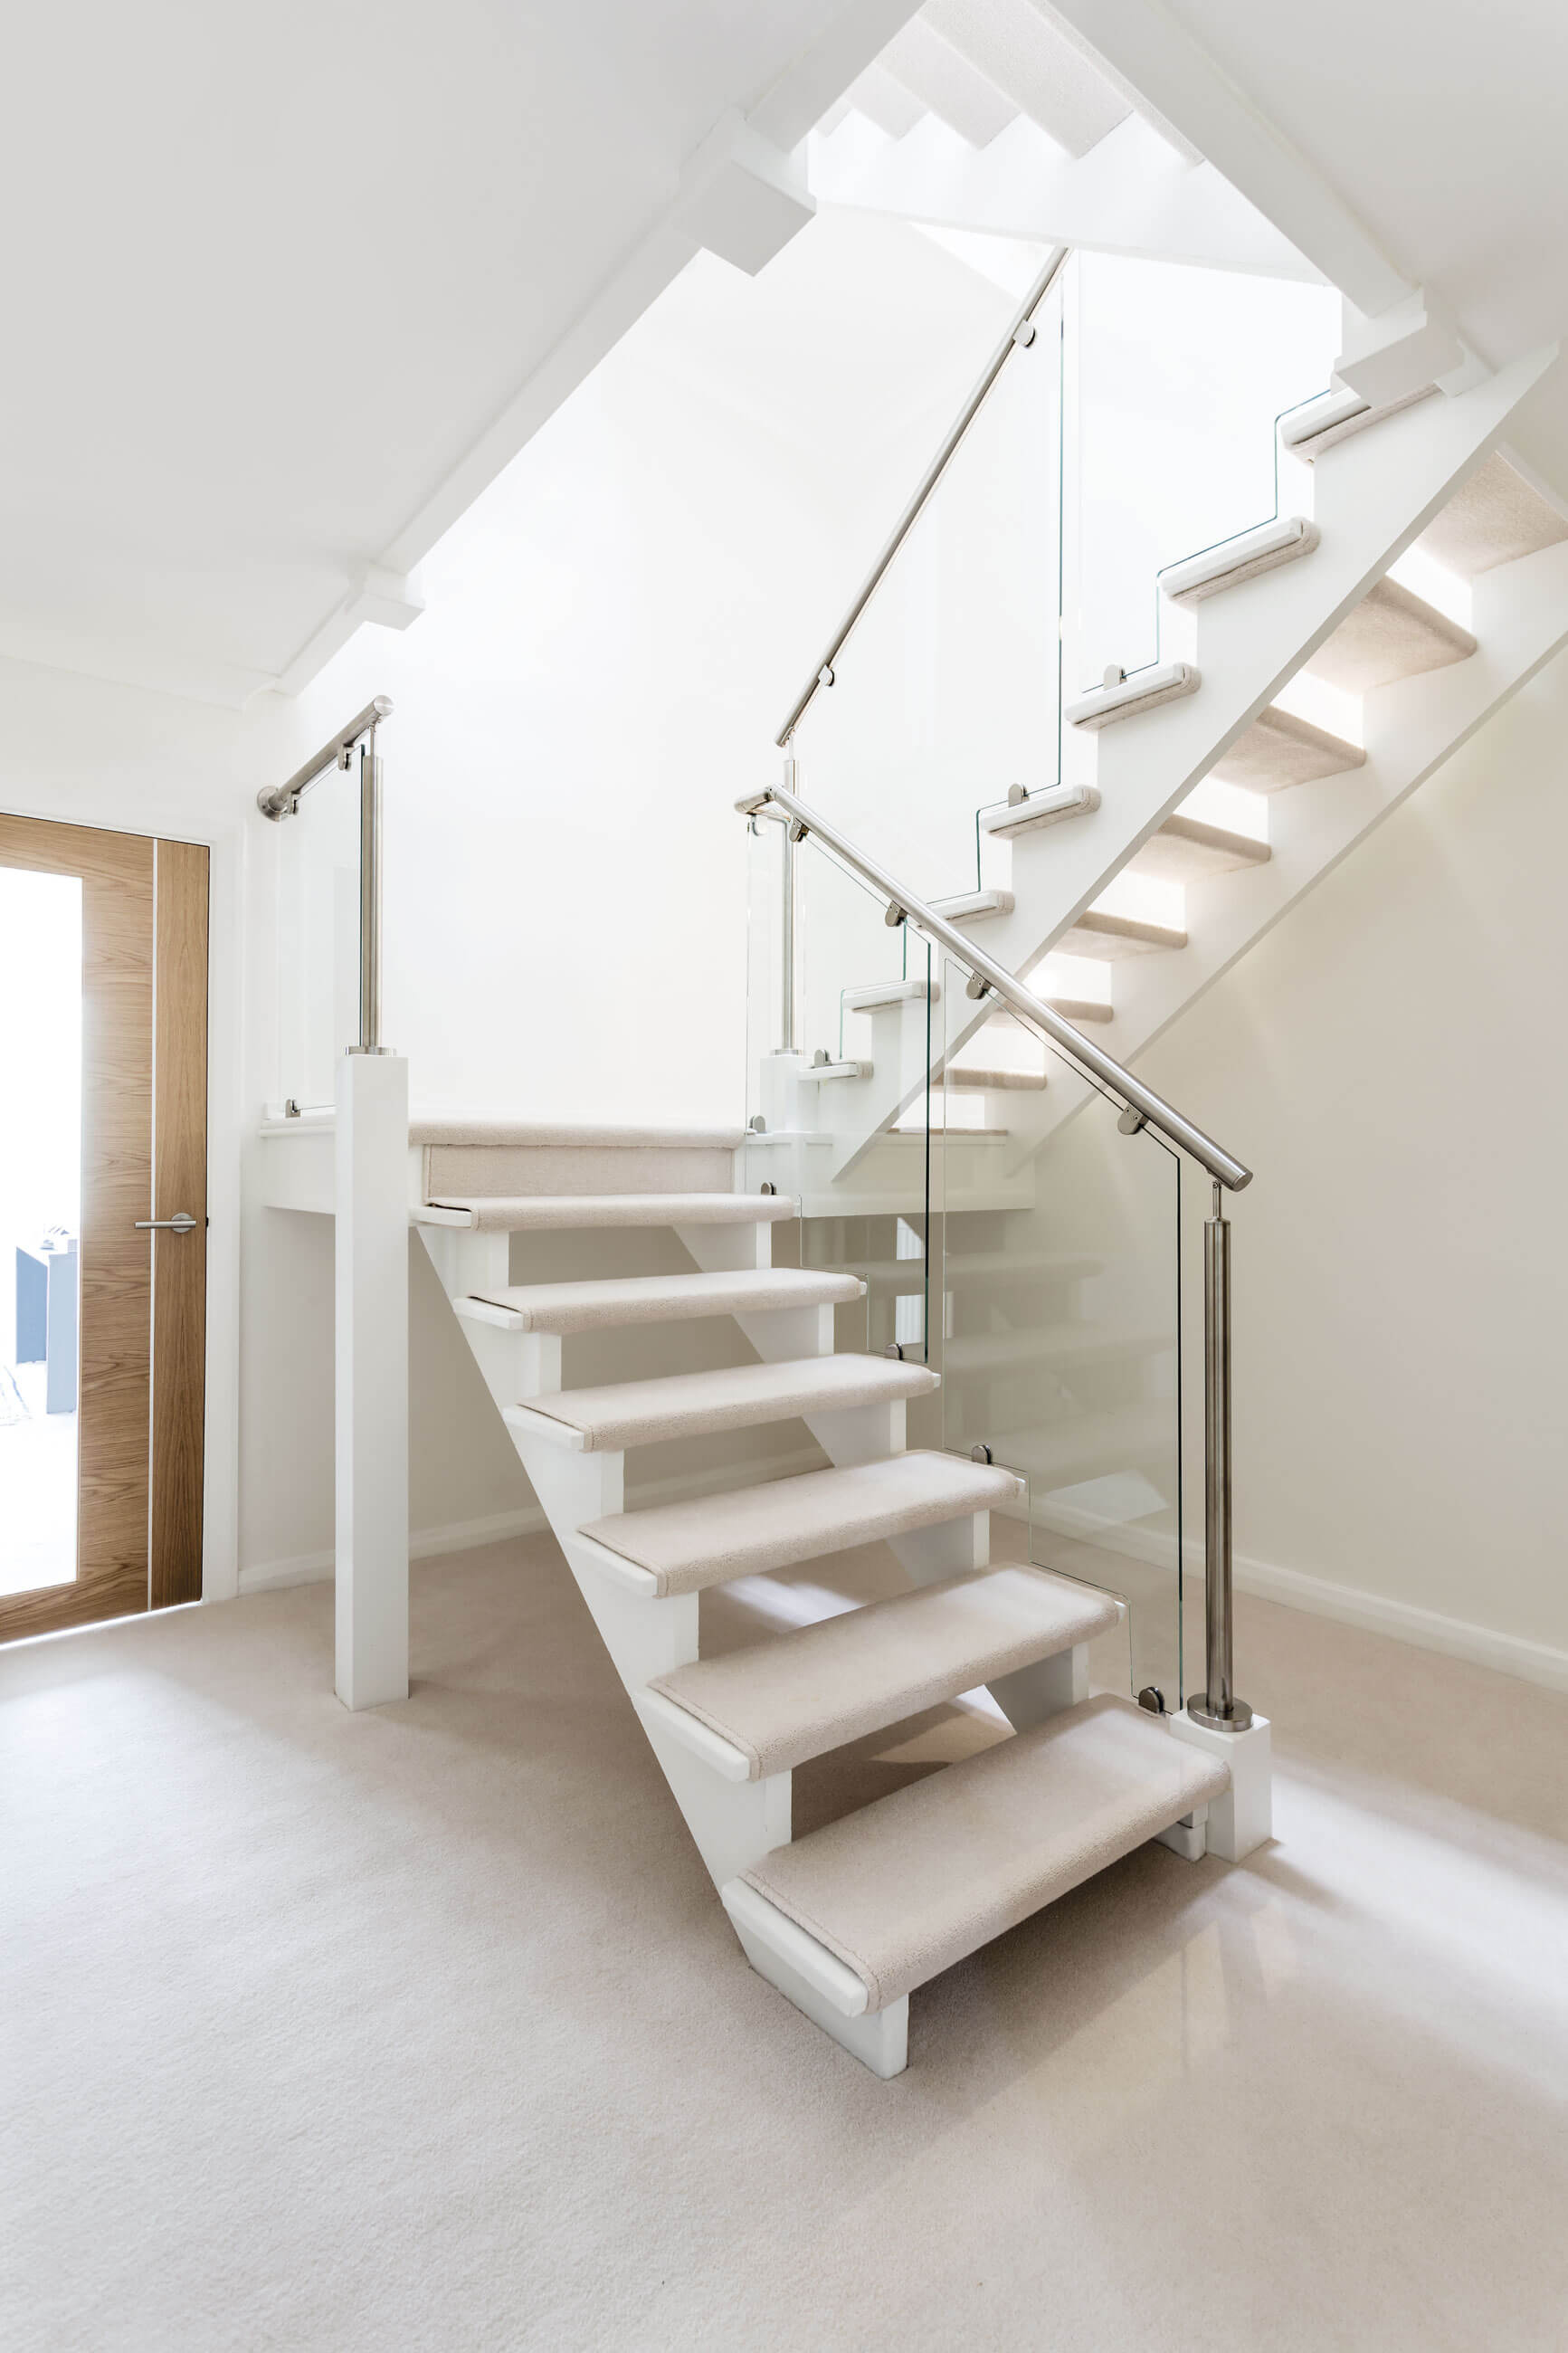 25 Best Ideas About Modern Staircase On Pinterest: Contemporary Staircases To Brighten Your Home